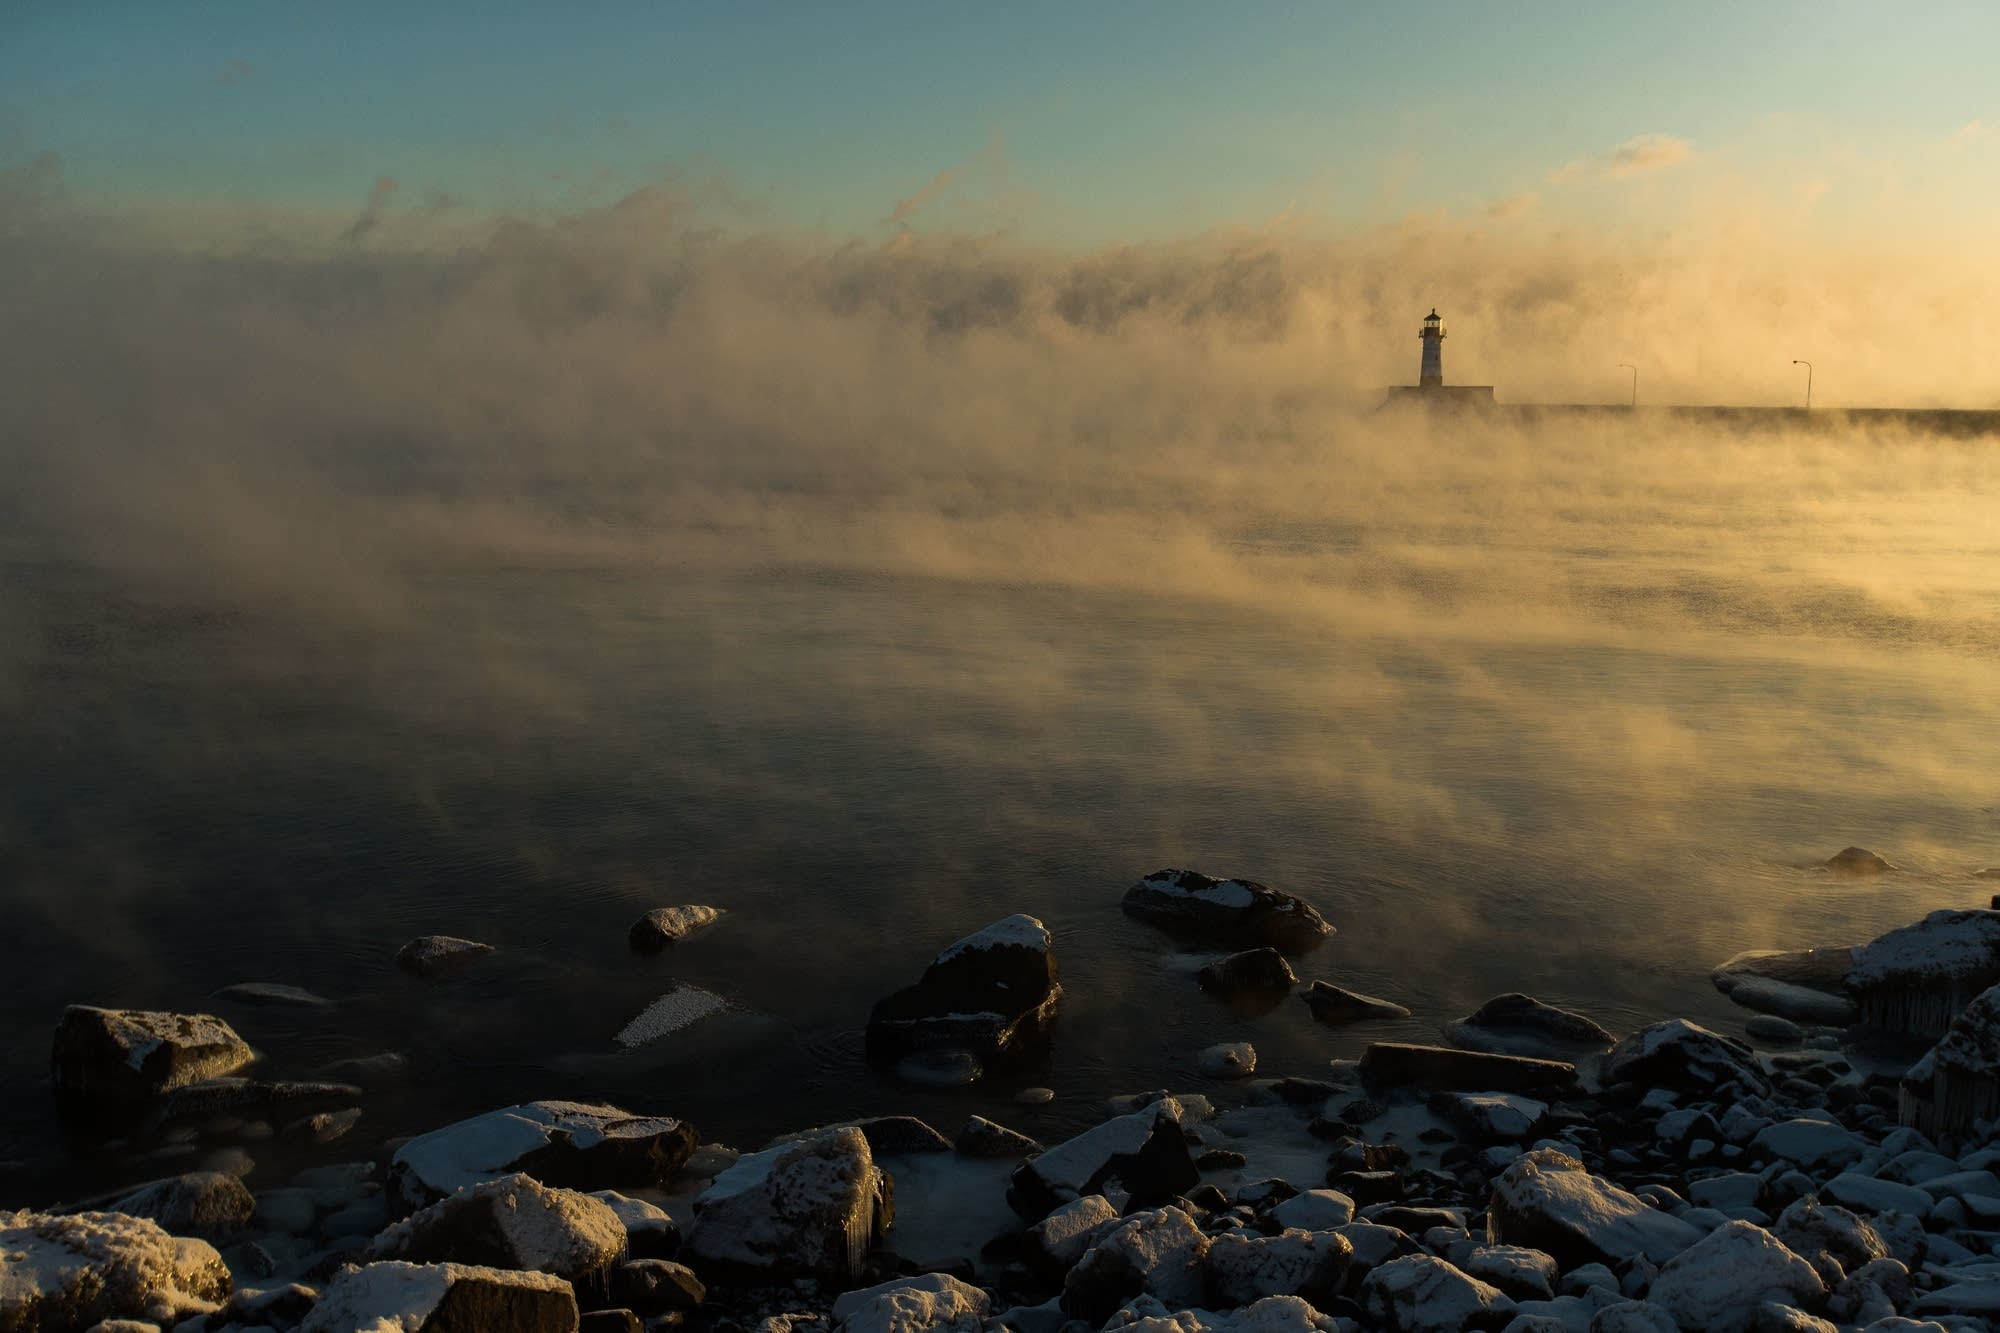 Sunlight shrouds and sea smoke rises over the North Pier Light.